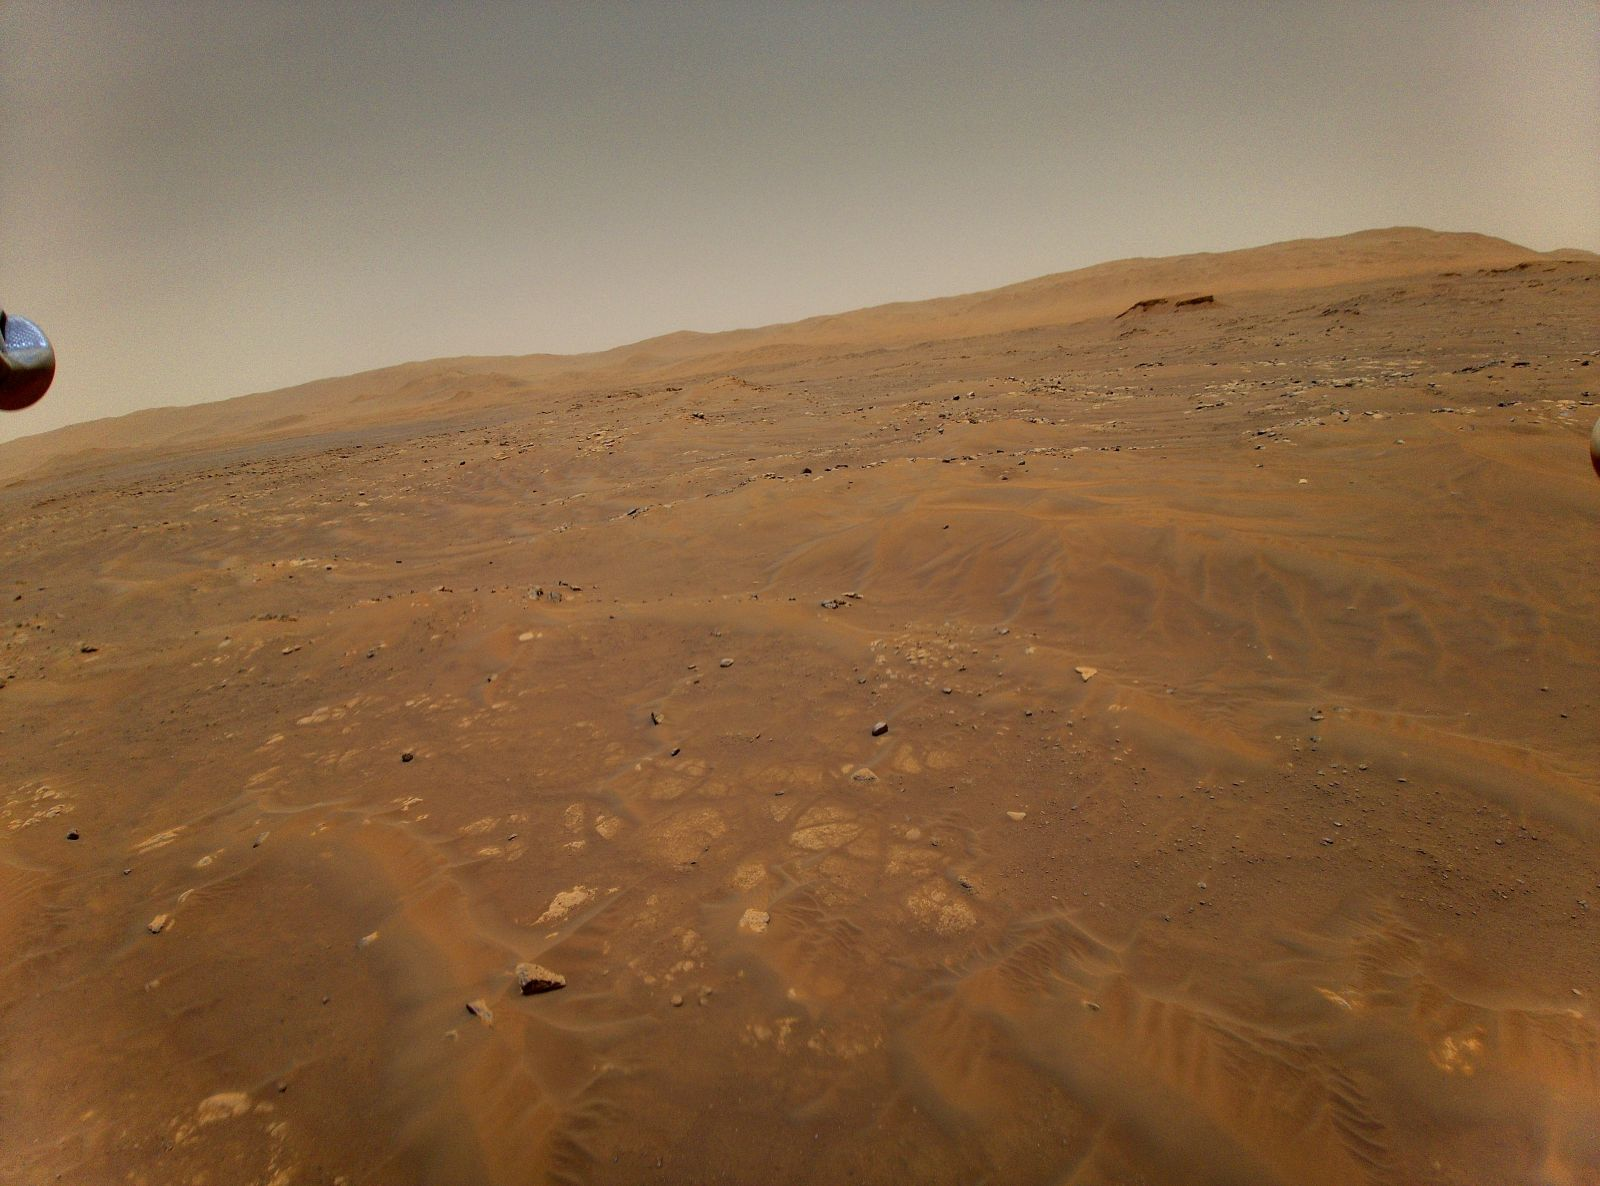 The onboard color camera on the Ingenuity Mars Helicopter captures this image of the horizon as it experiences large oscillations during the latter part of its sixth flight on Mars. Nonetheless, the helicopter landed safely within 15 feet of its intended location. Credit: NASA/JPL-Caltech